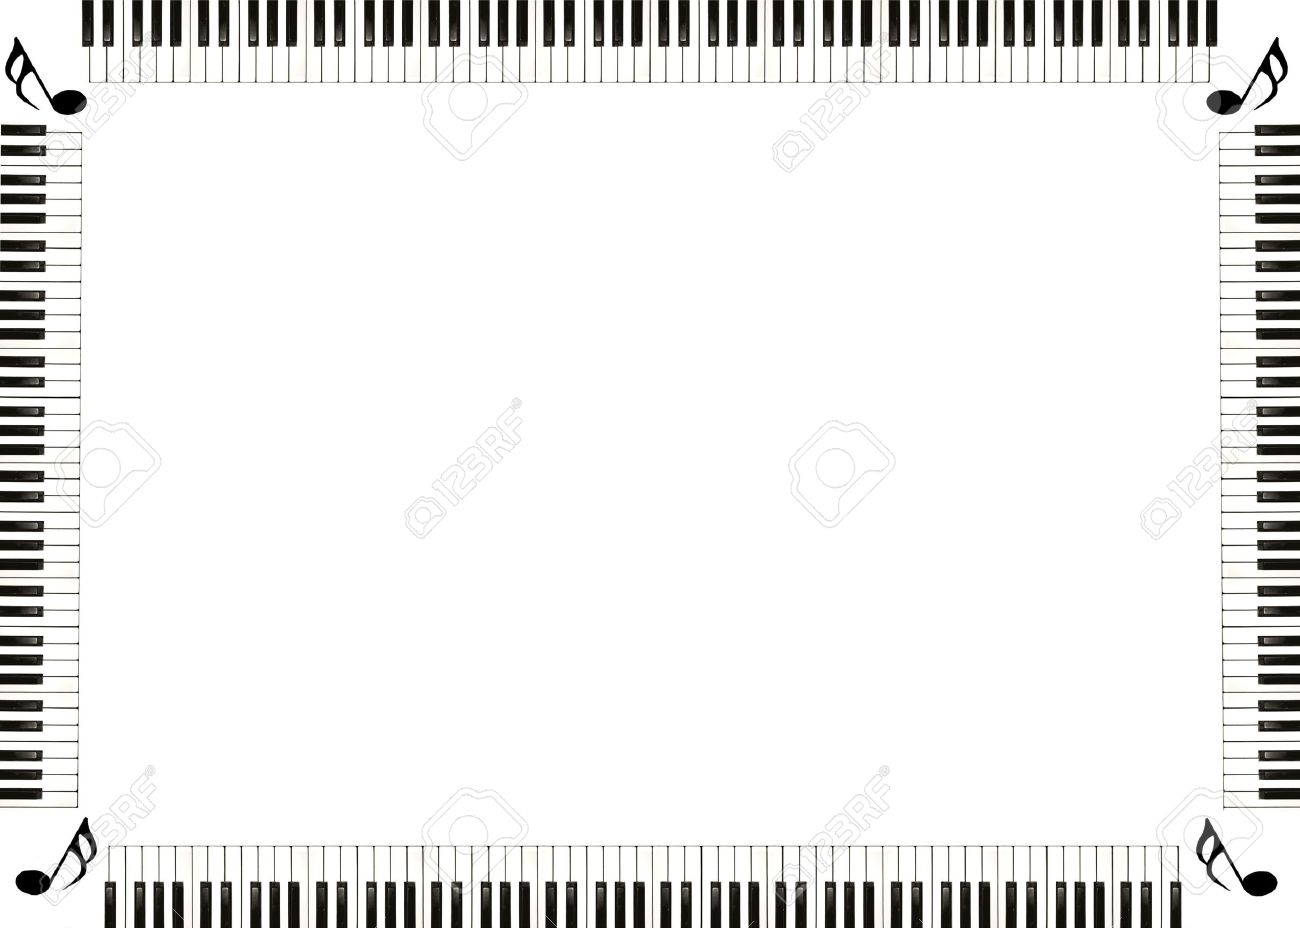 Piano Musical Border With Music Notes In The Corners Stock Photo